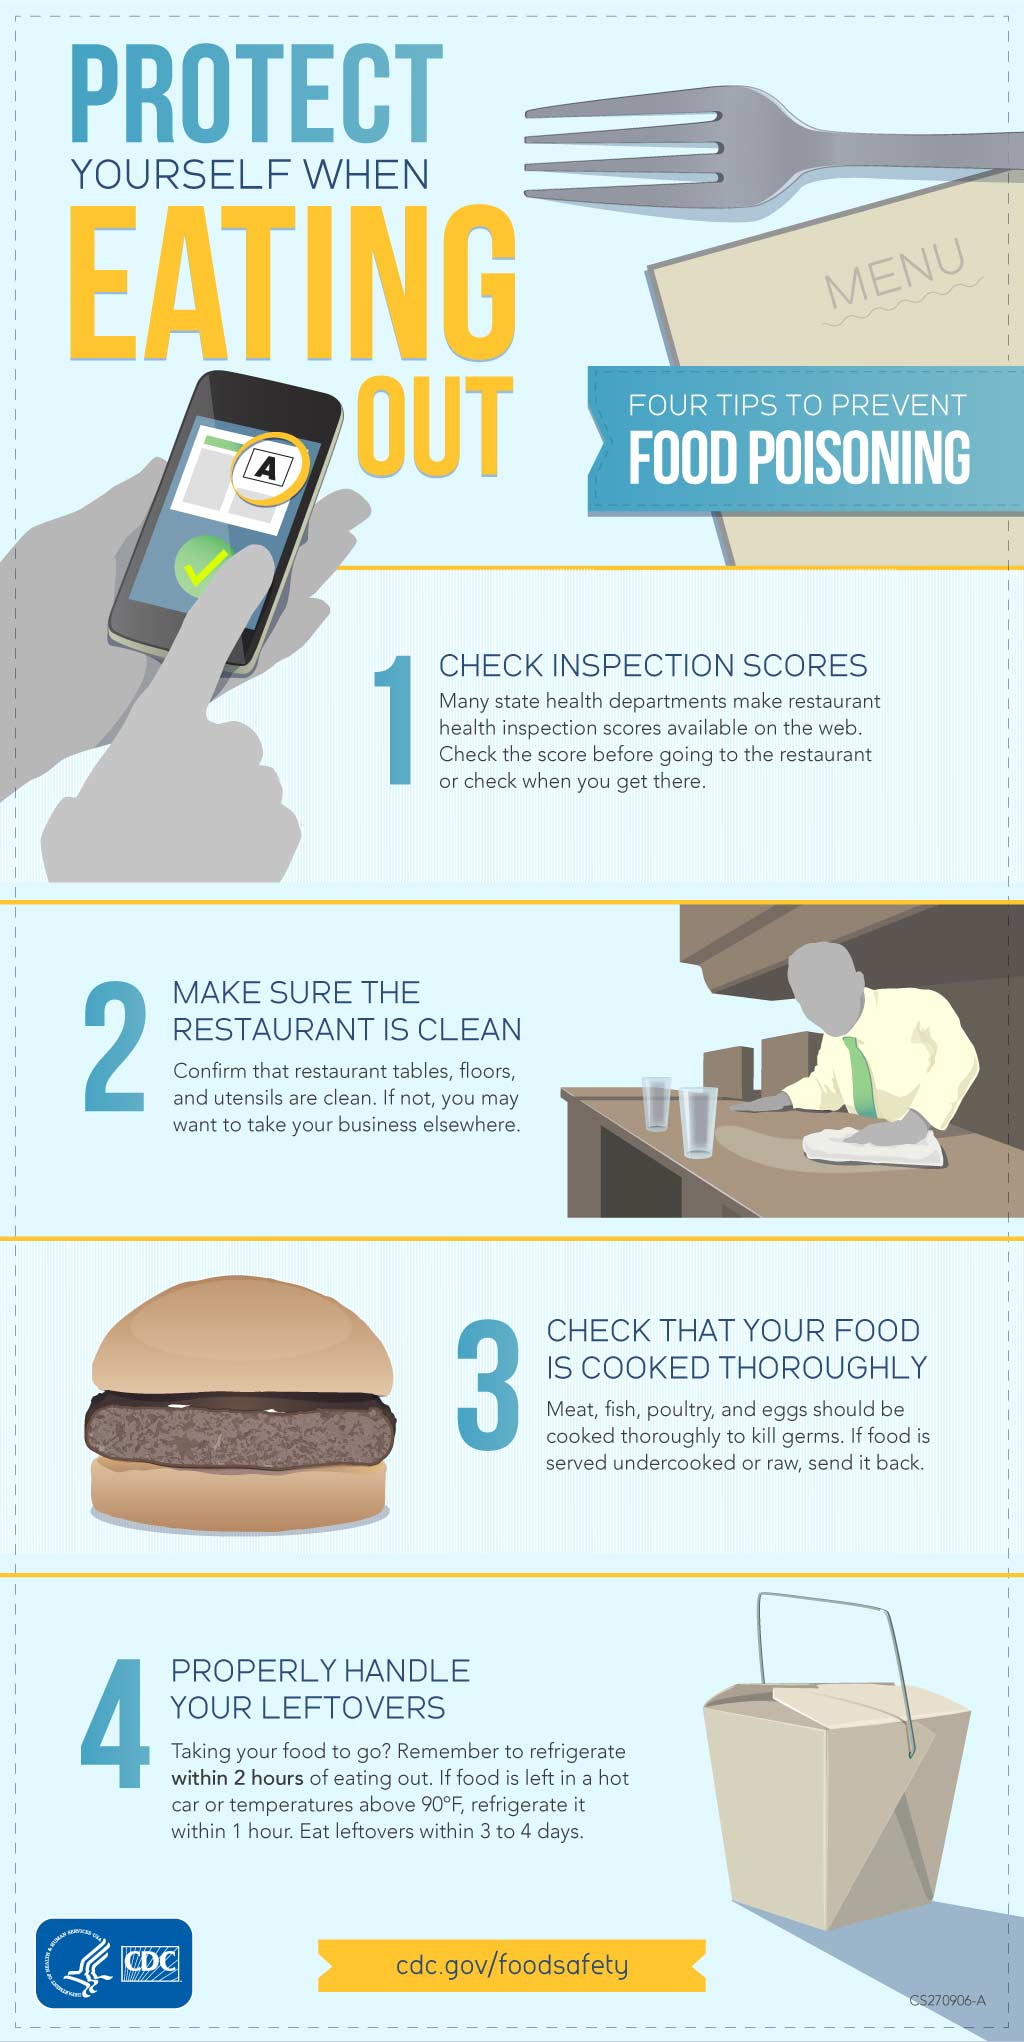 cdc-protect-yourself-when-eating-out-food-safety